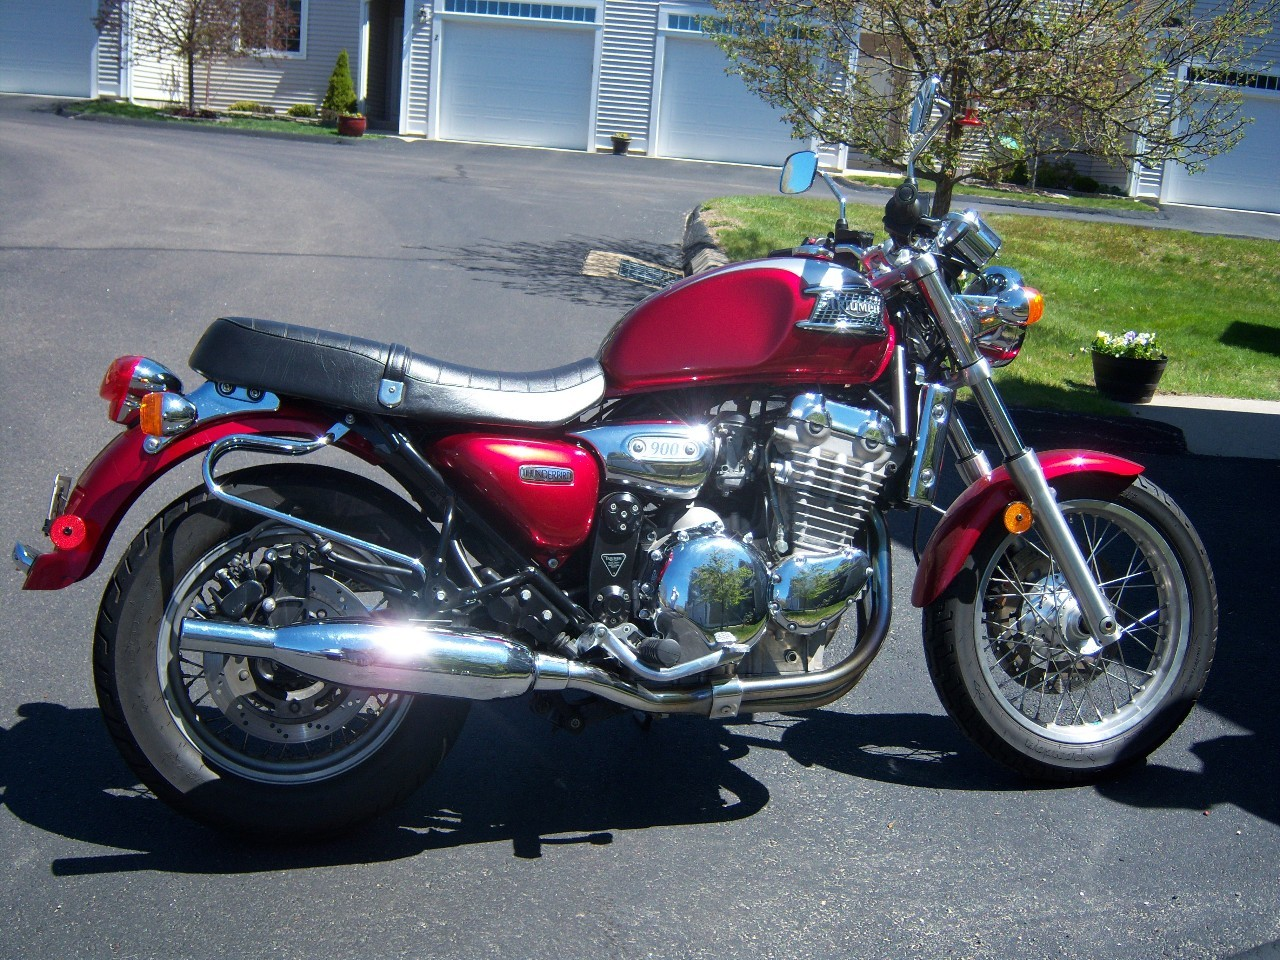 Triumph For Sale - Triumph 2001441 Motorcycles - Cycle Trader